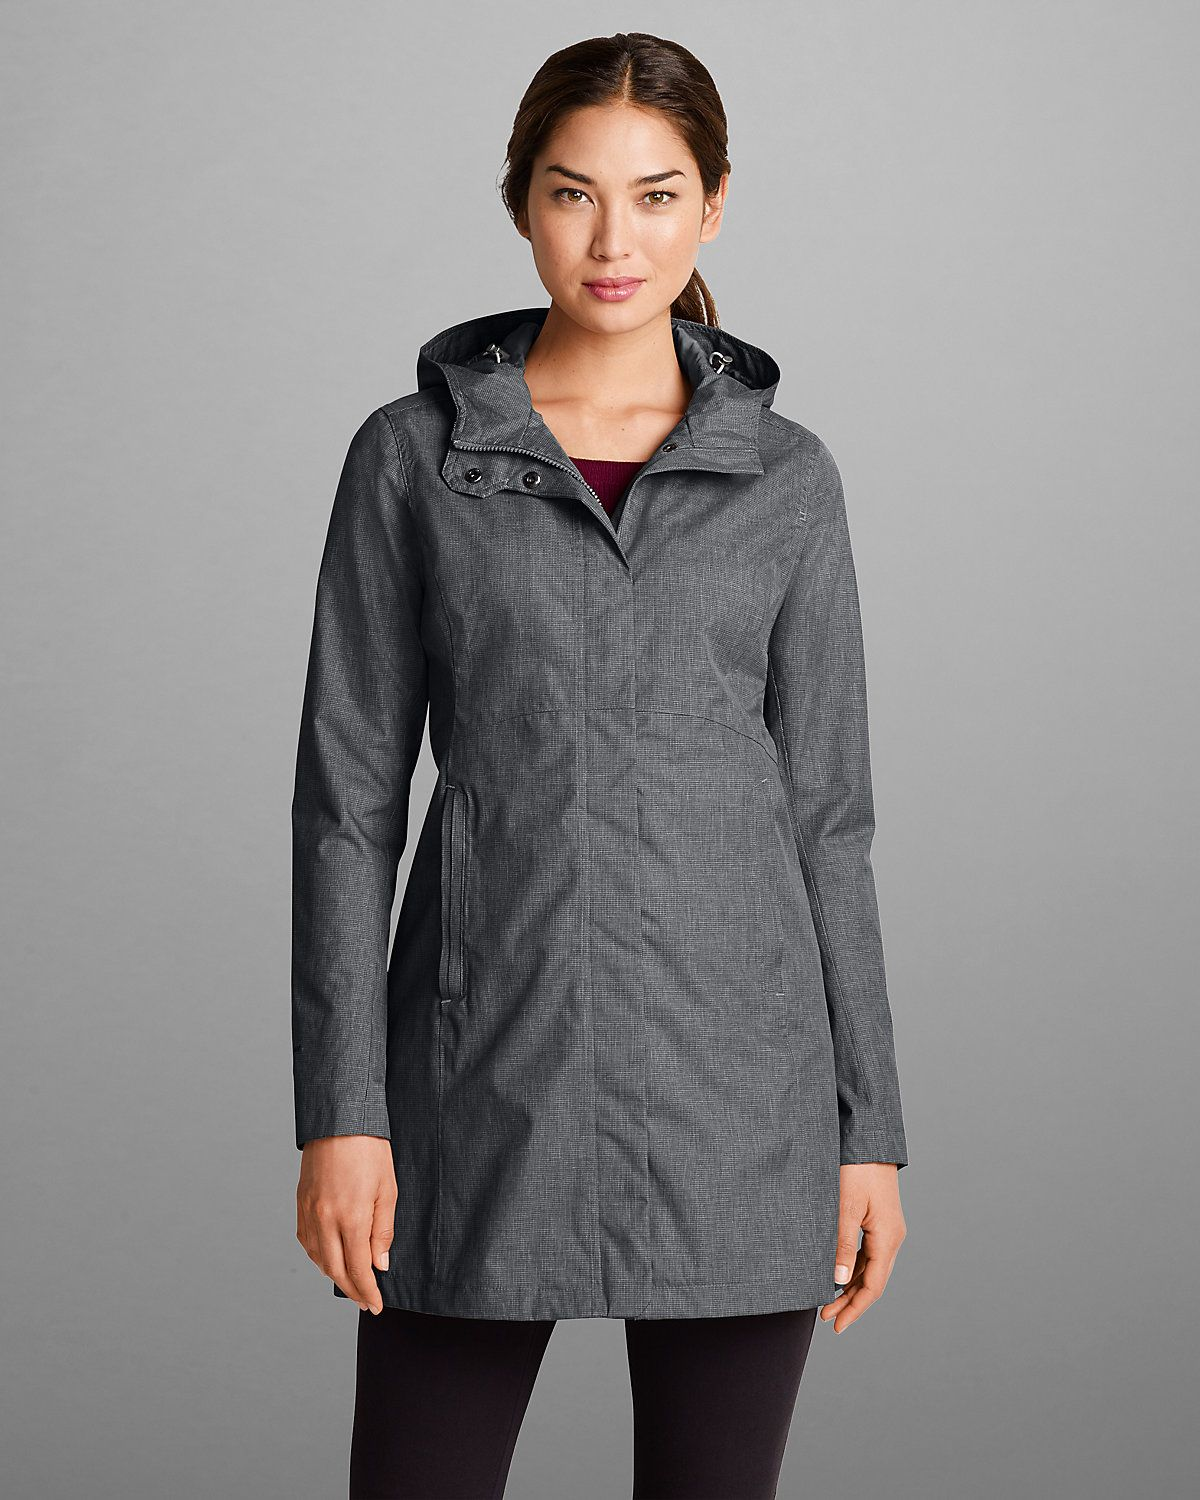 Women's Mackenzie Trench Coat Eddie Bauer Carefree